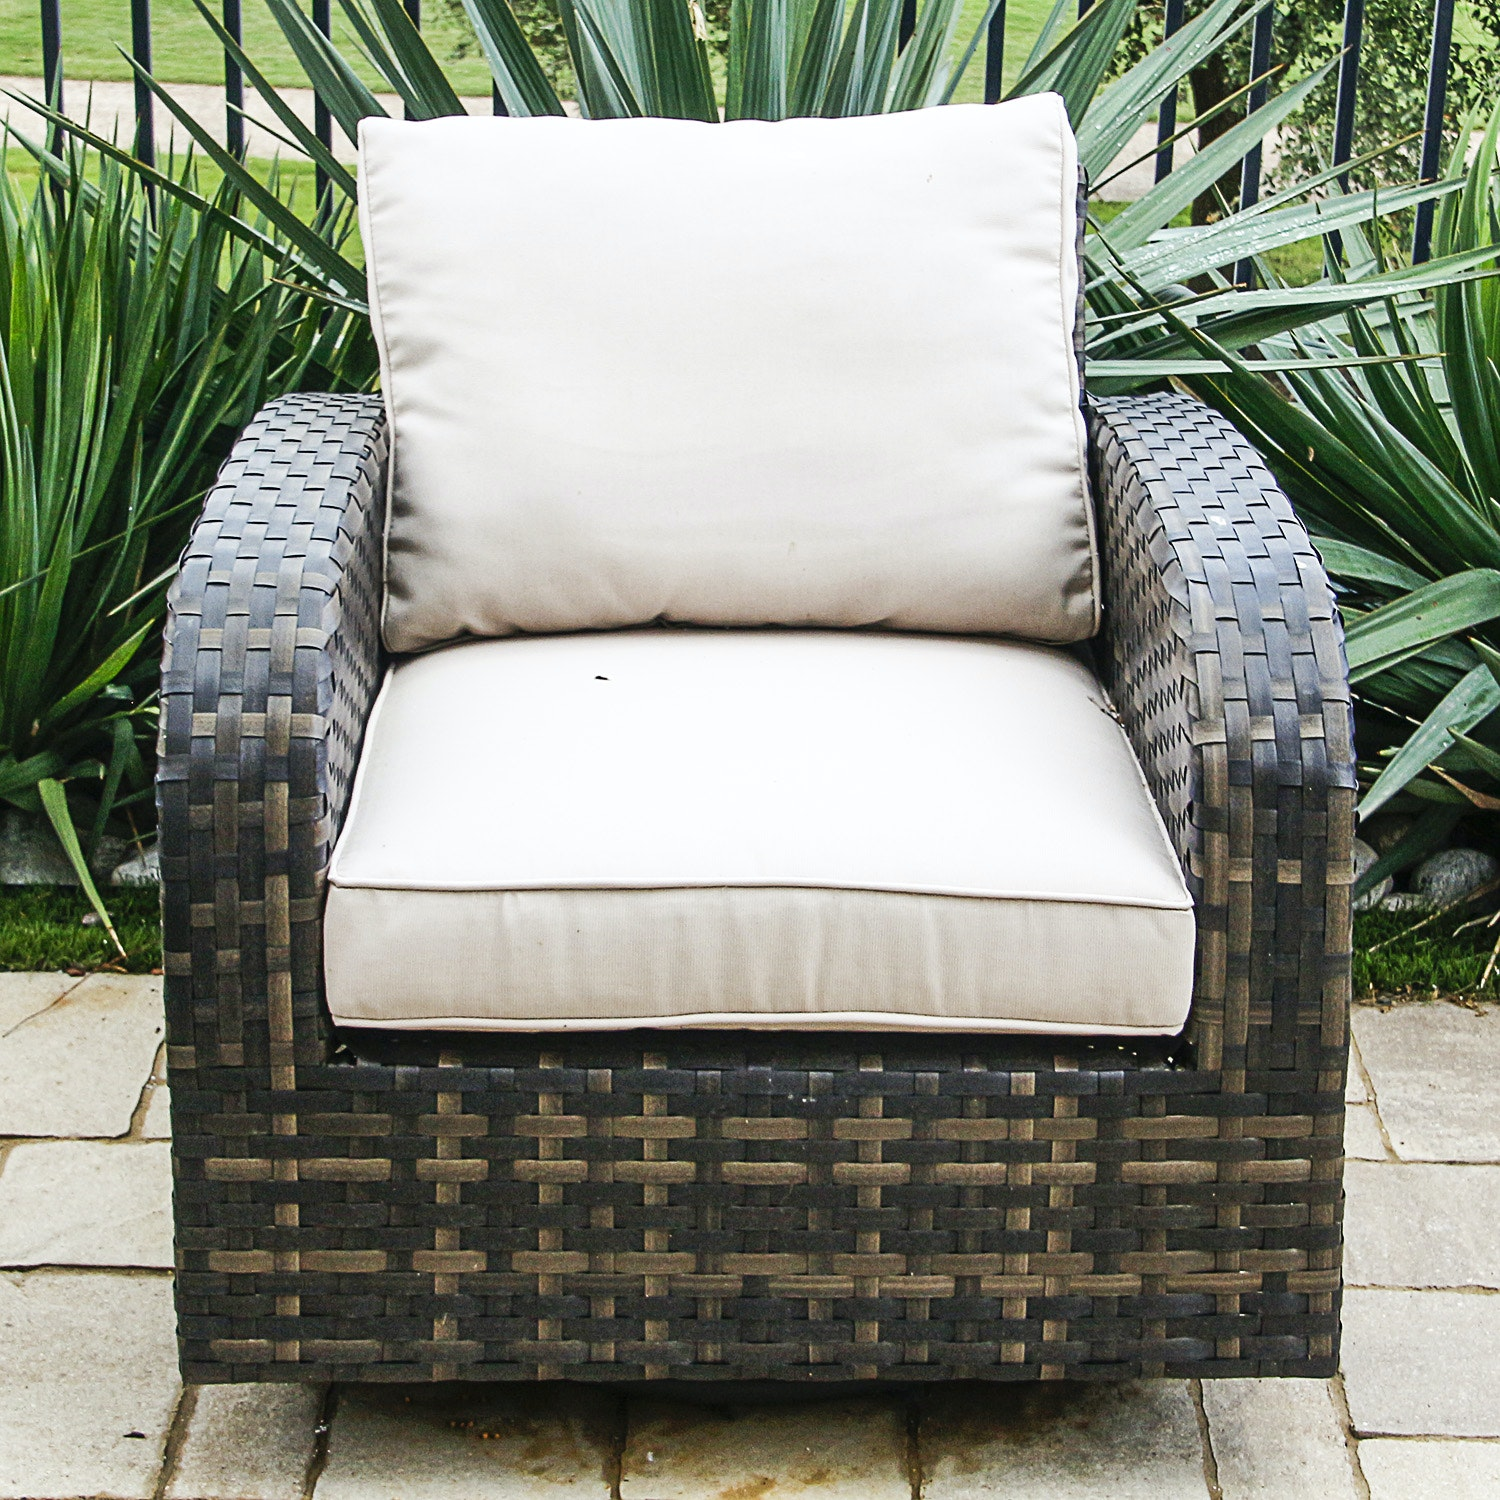 Brown Woven Patio Chair with Cream Upholstered Cushions